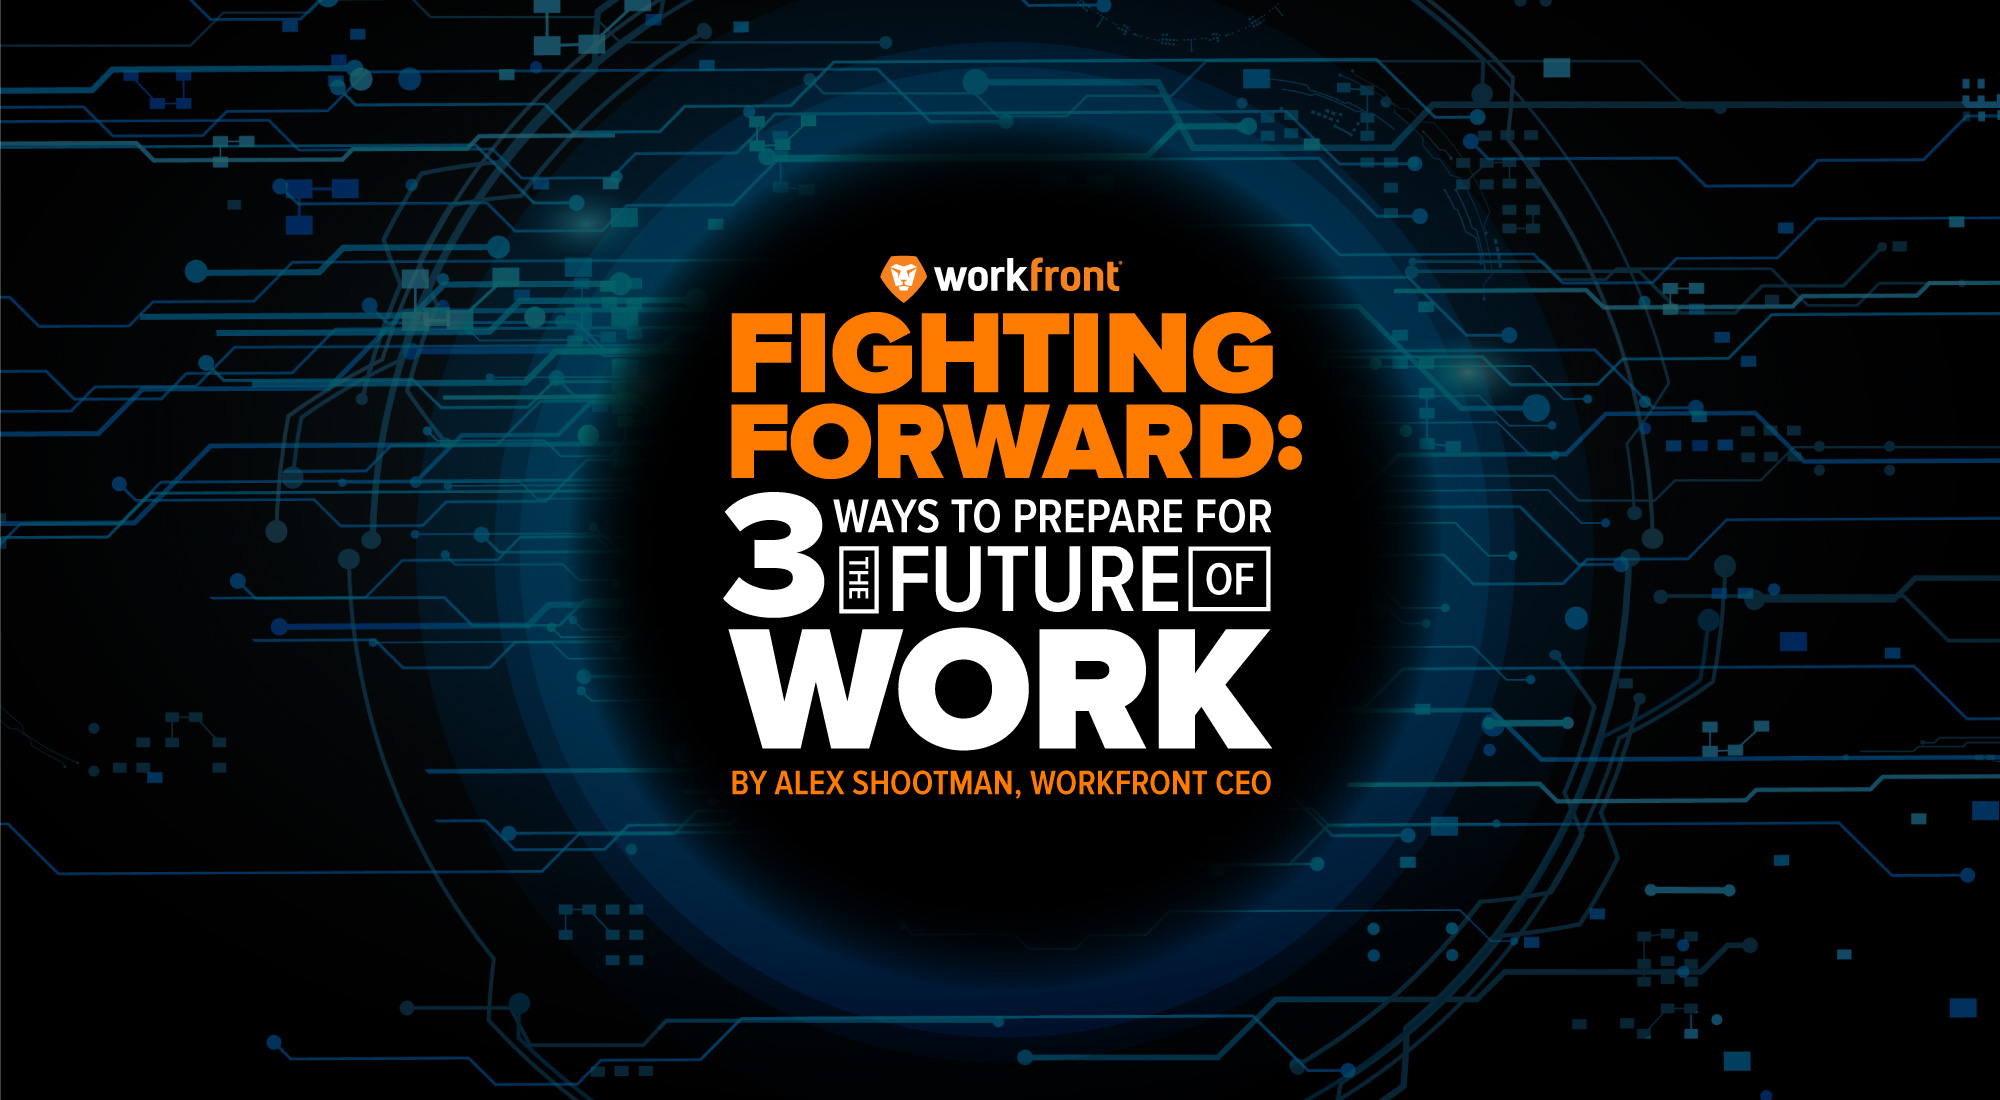 Three ways to prepare for the future of work